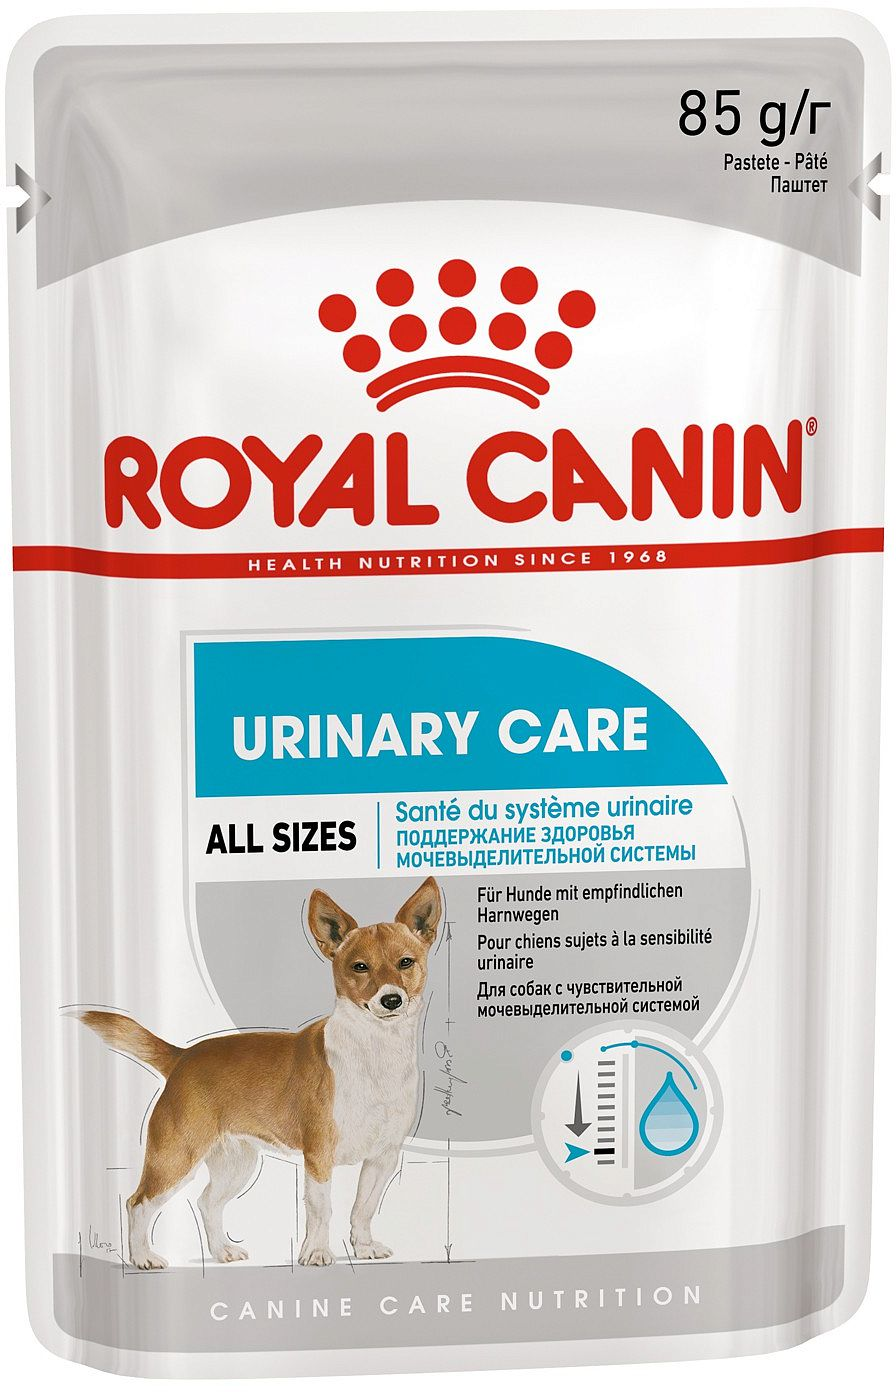 Влажный корм для собак ROYAL CANIN Urinary Care, паштет от зоомагазина Дино Зоо